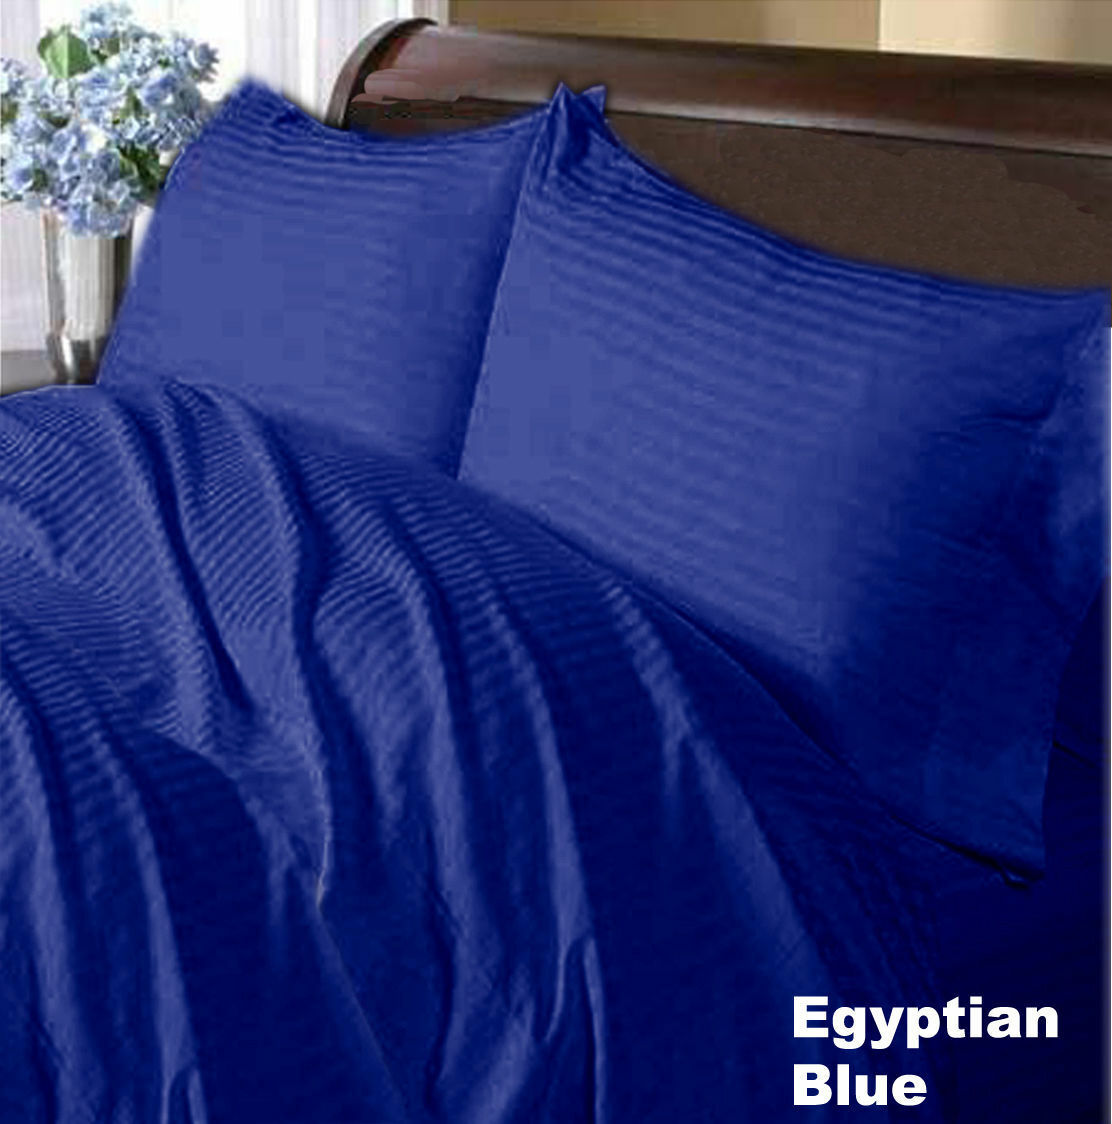 Egyptian Cotton 1000 Thread Count Luxury Bedding All Sizes Egyptian bluee Striped